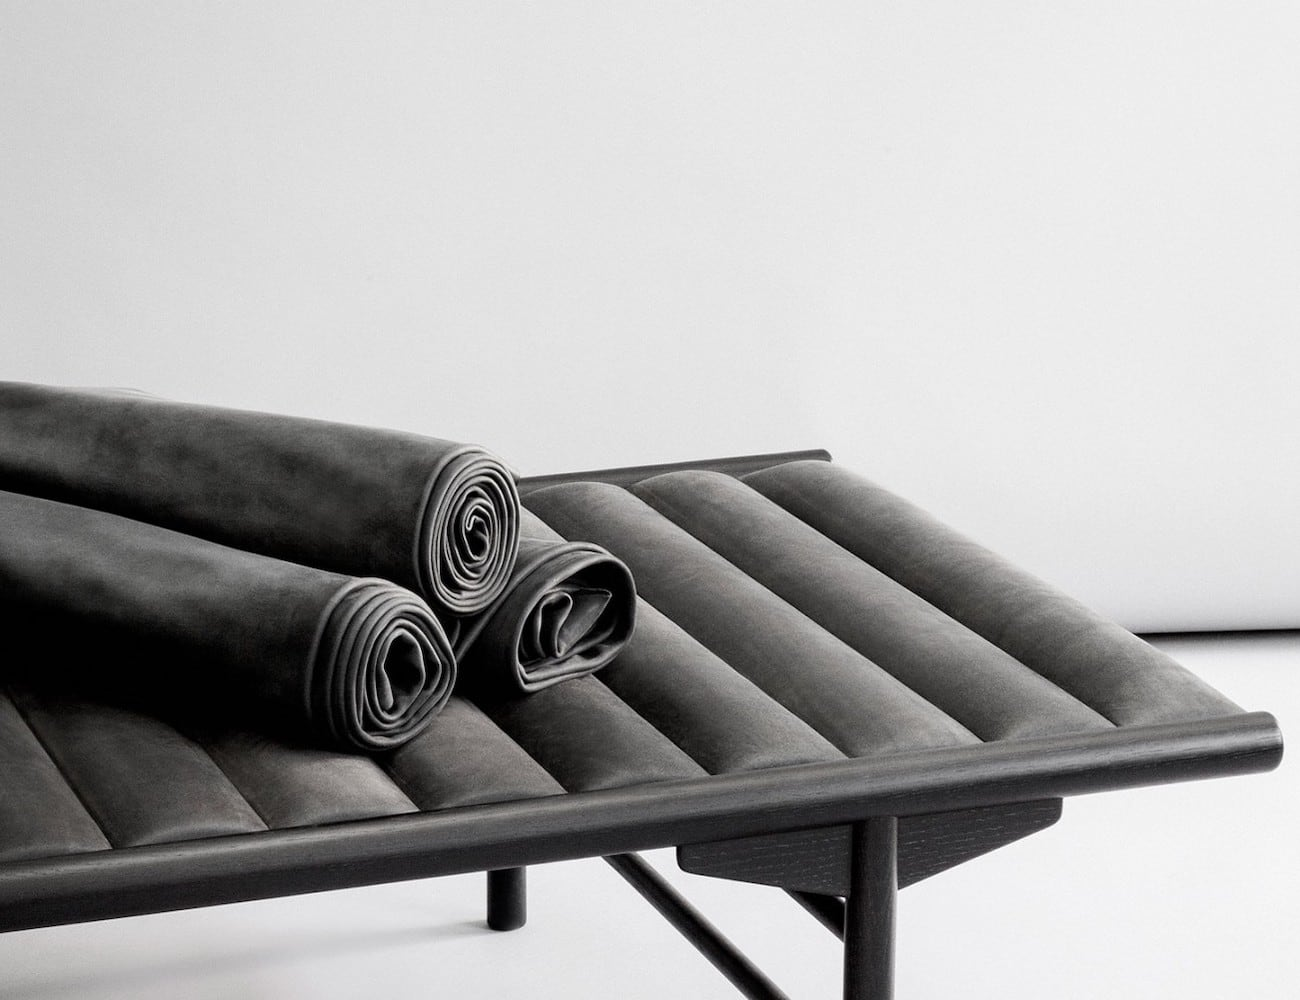 Menu Align Daybed Scandinavian Designer Day Bed adds Nordic style to your space